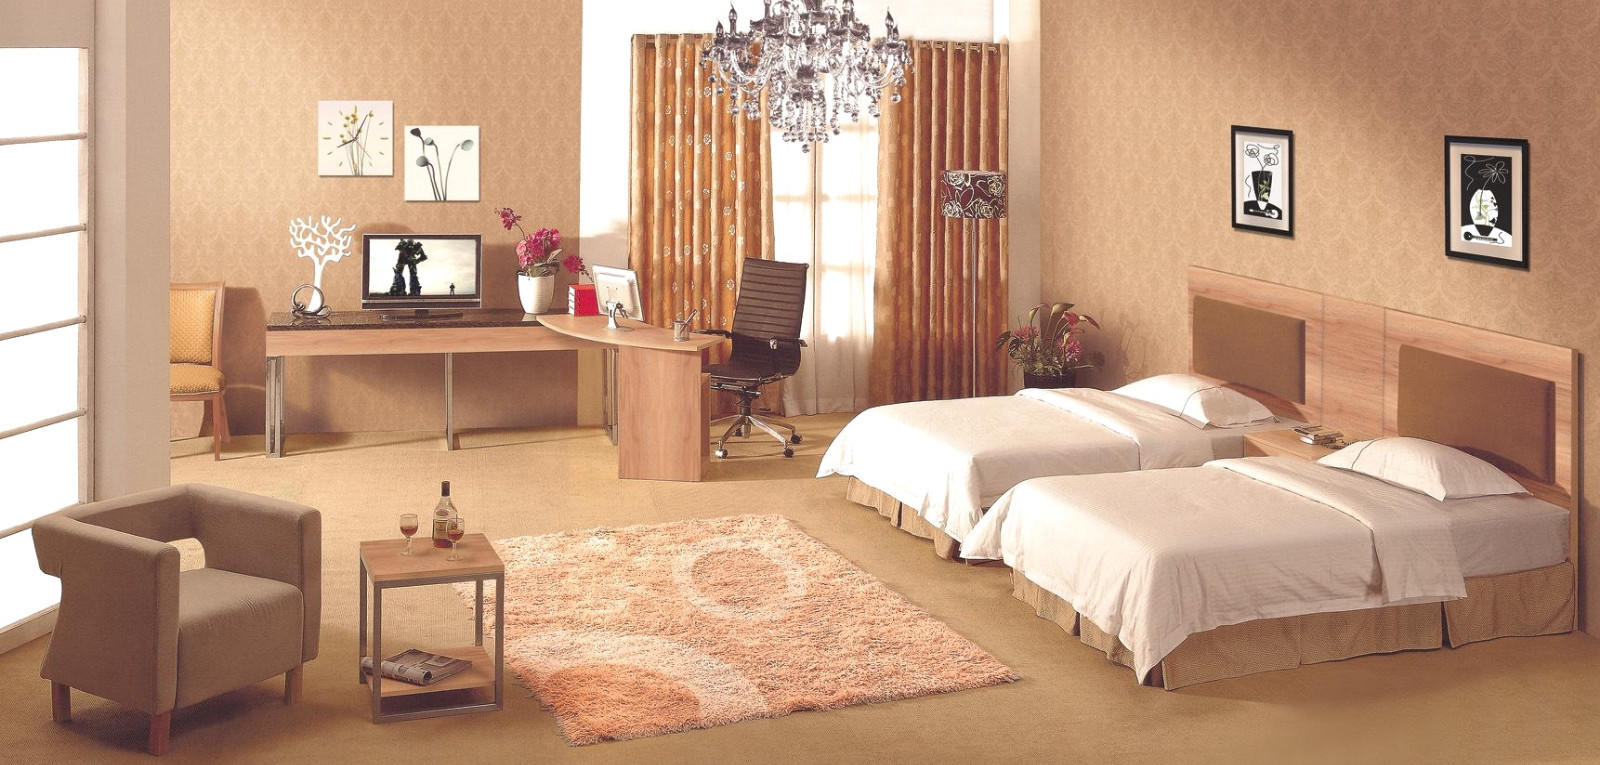 YSK Furniture hotel discount hotel furniture king for furnishings-1